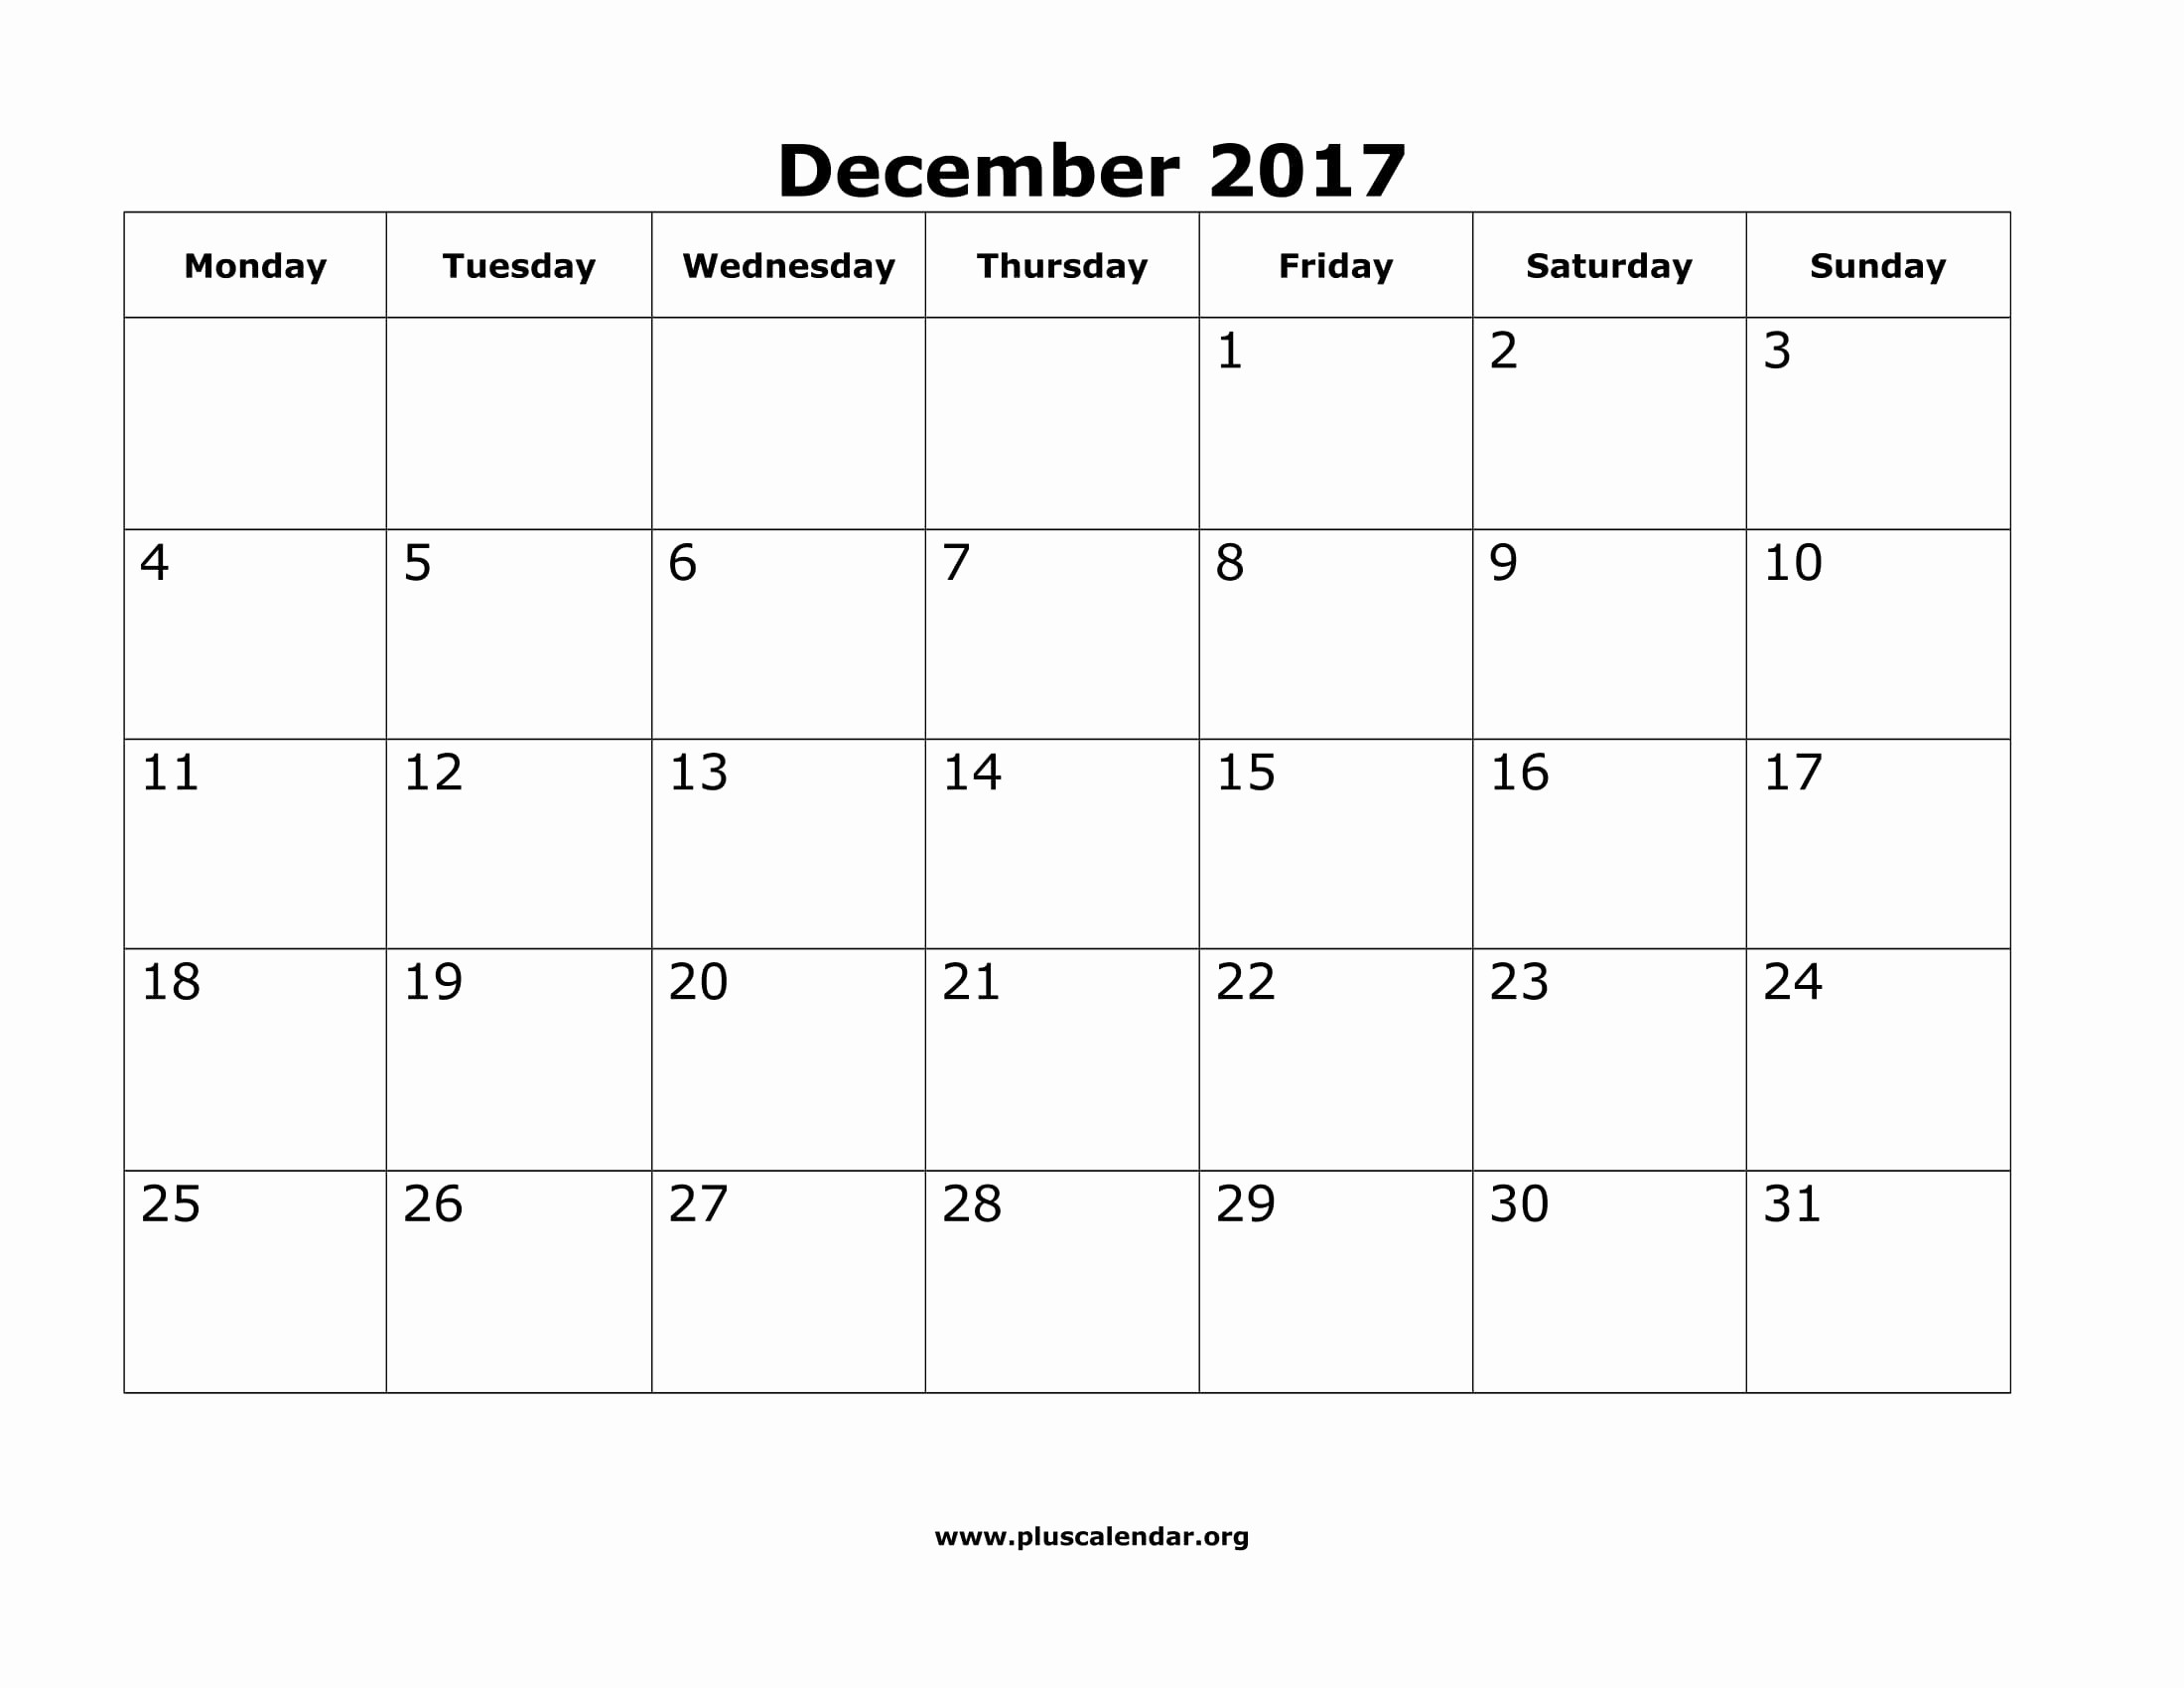 Calendar 2017 Monday to Sunday Luxury November 2018 Monday Through Sunday – Template Calendar Design